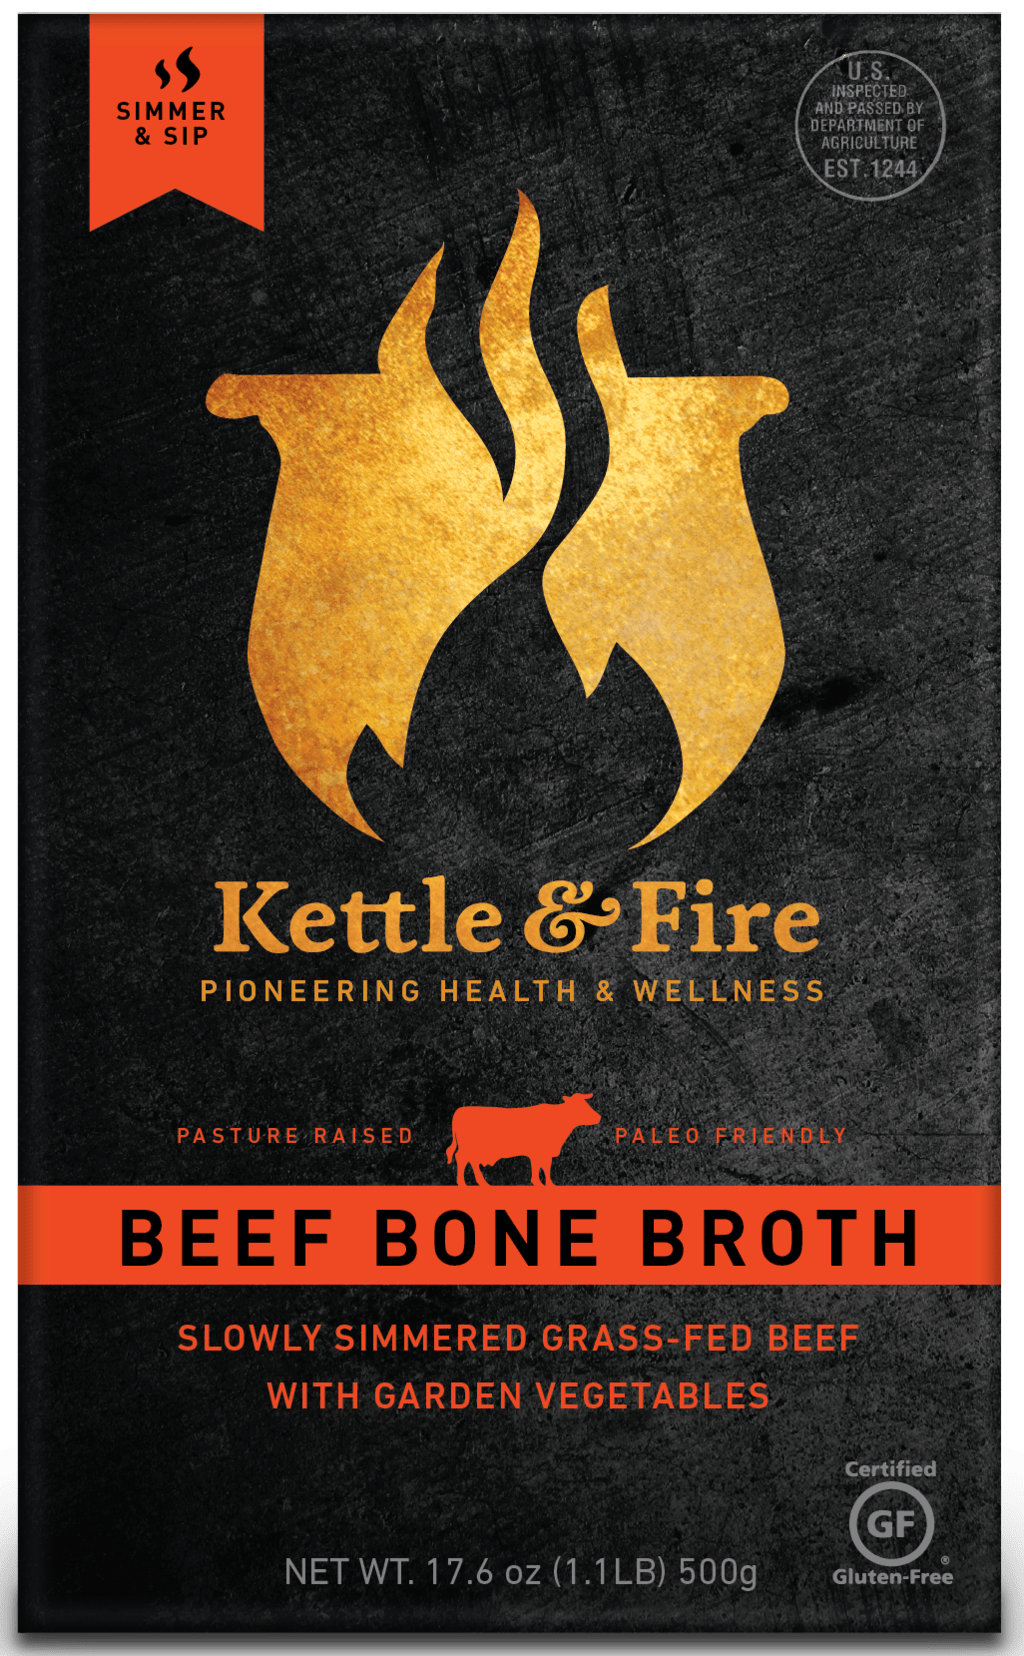 Kettle & Fire Organic Gluten-Free Paleo Grass-Fed Beef Broth | 15 percent off with code LOVE15 | Made with Organic Ingredients and Never Frozen